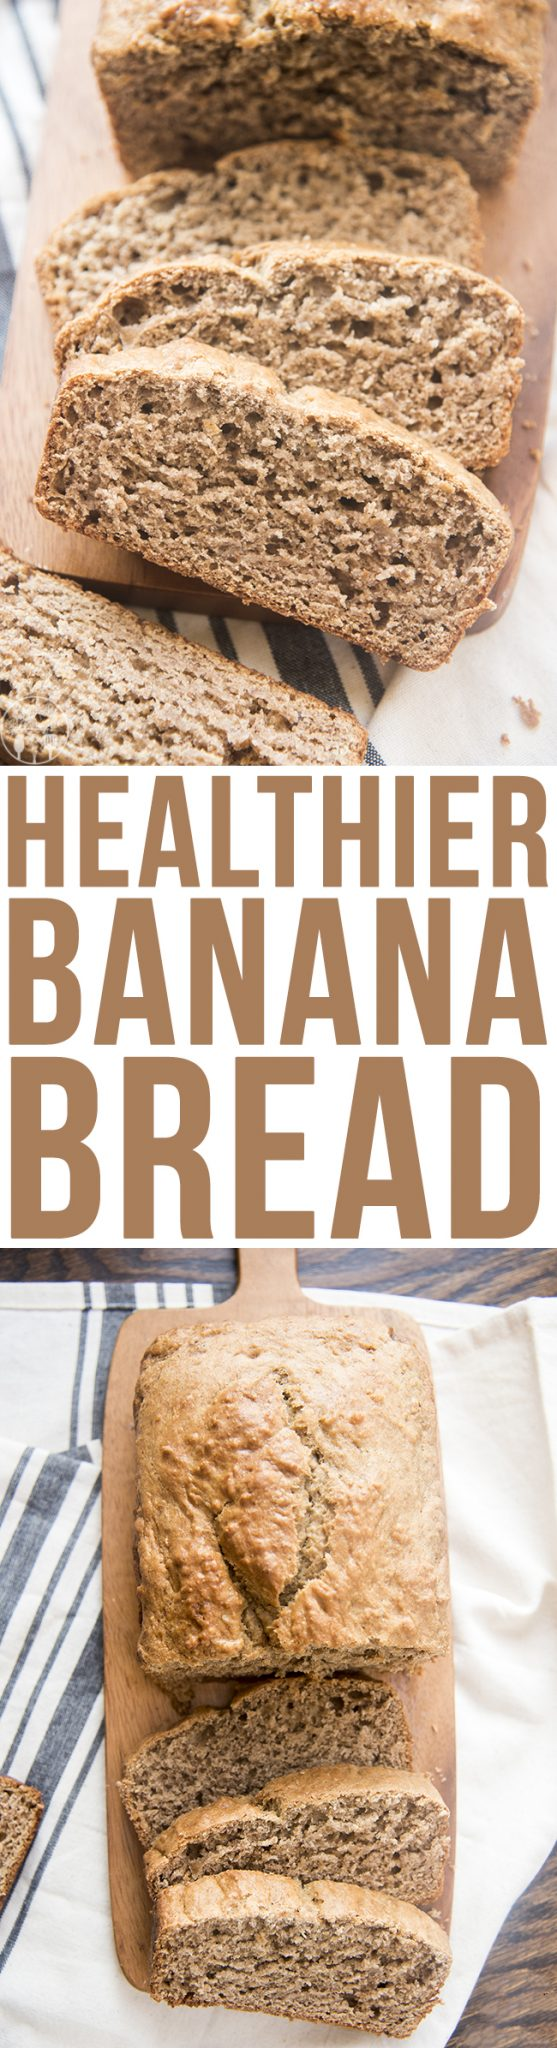 Healthier Banana Bread - This delicious banana bread is perfectly moist, packed full of flavor and made healthier with coconut oil, greek yogurt, andSPLENDA® Brown Sugar Blend.